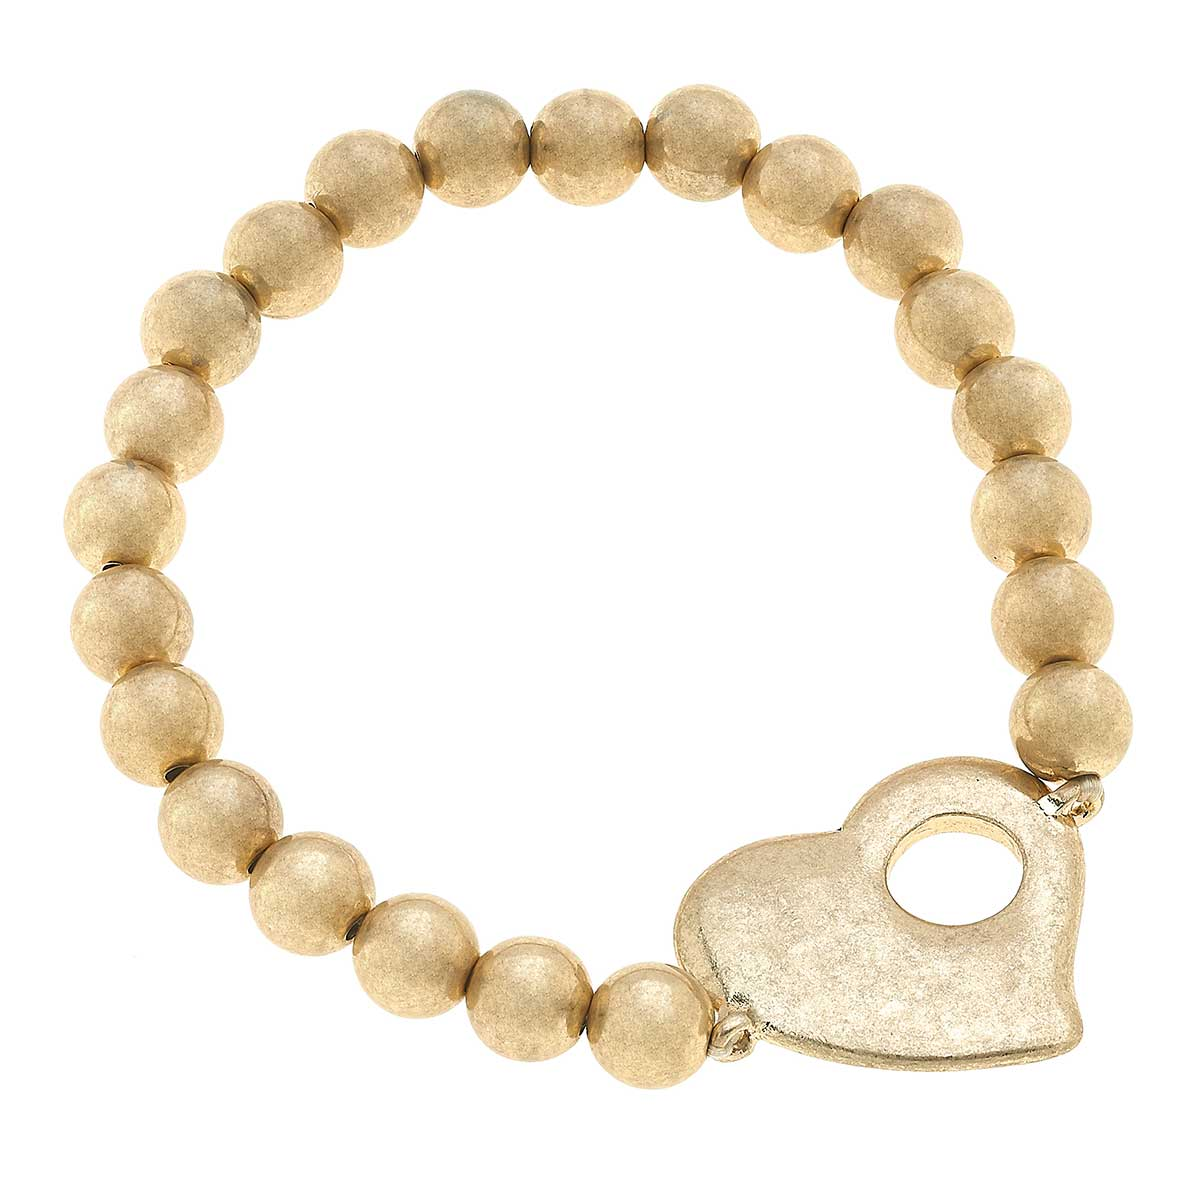 Avalyn Ball Bead Stretch Bracelet in Worn Gold